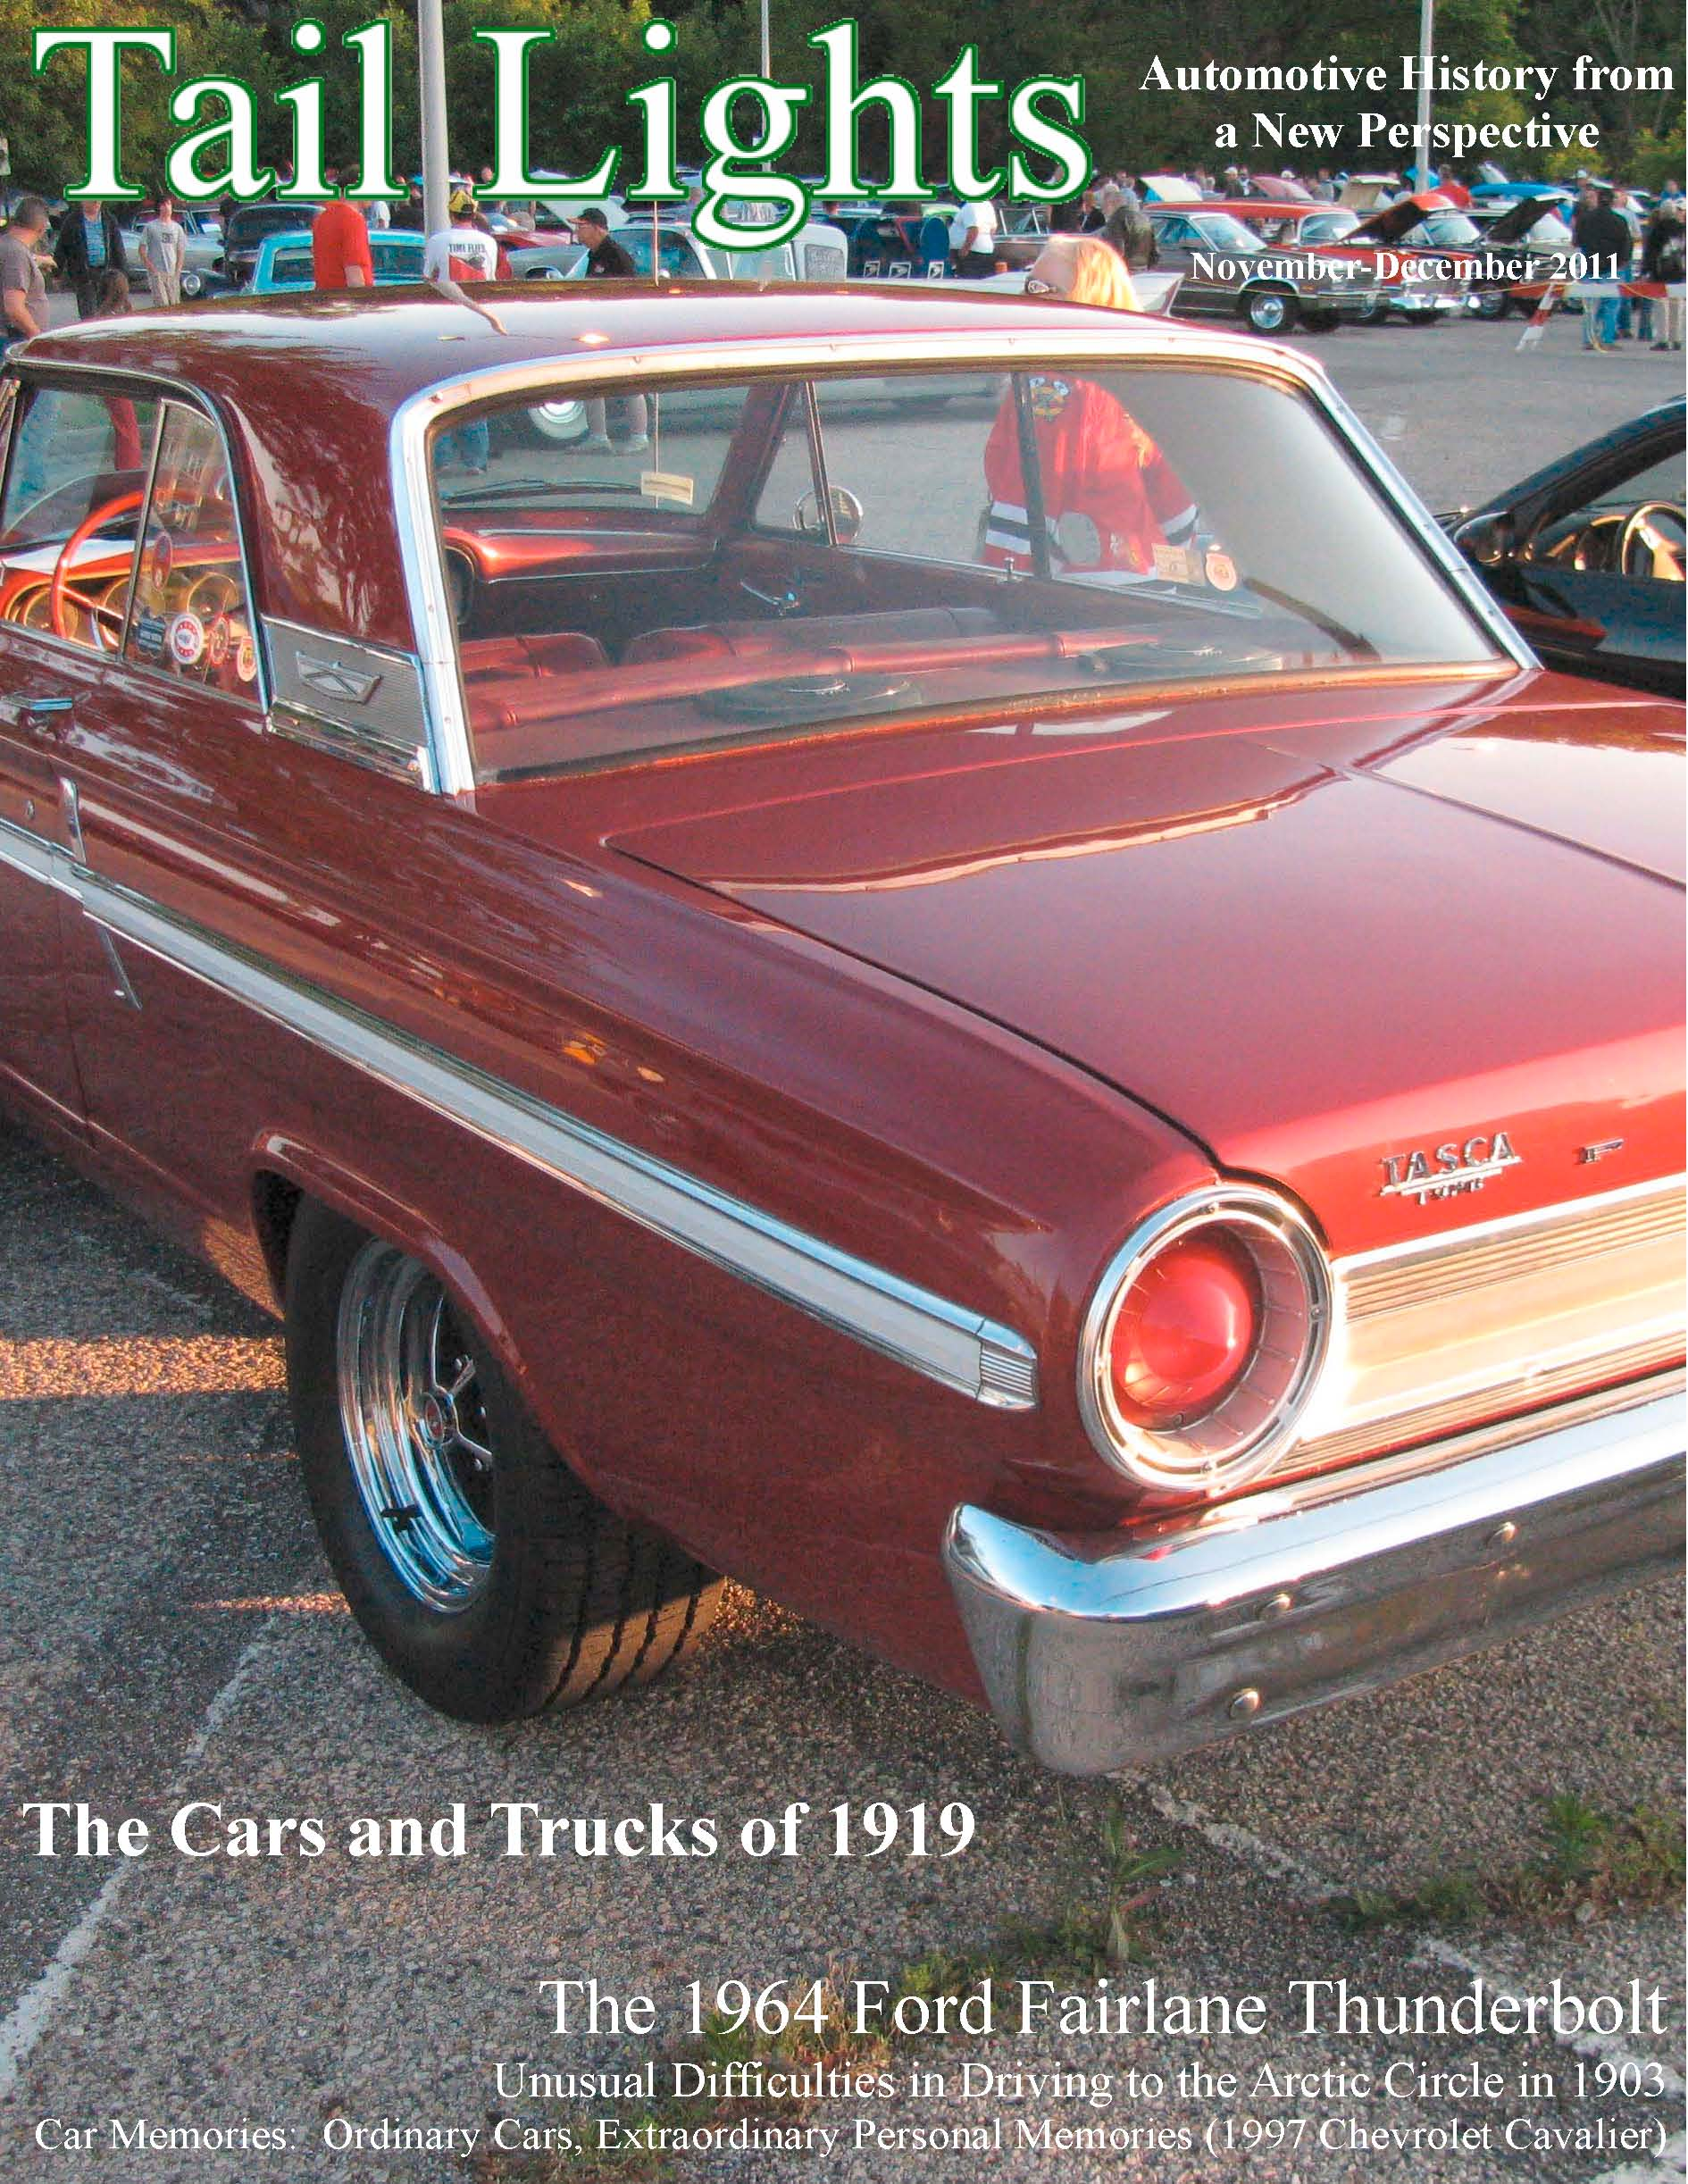 Ford Thunderbolt The Crittenden Automotive Library 1964 Fairlane Bucket Seats View Tail Lights Cover 478kb